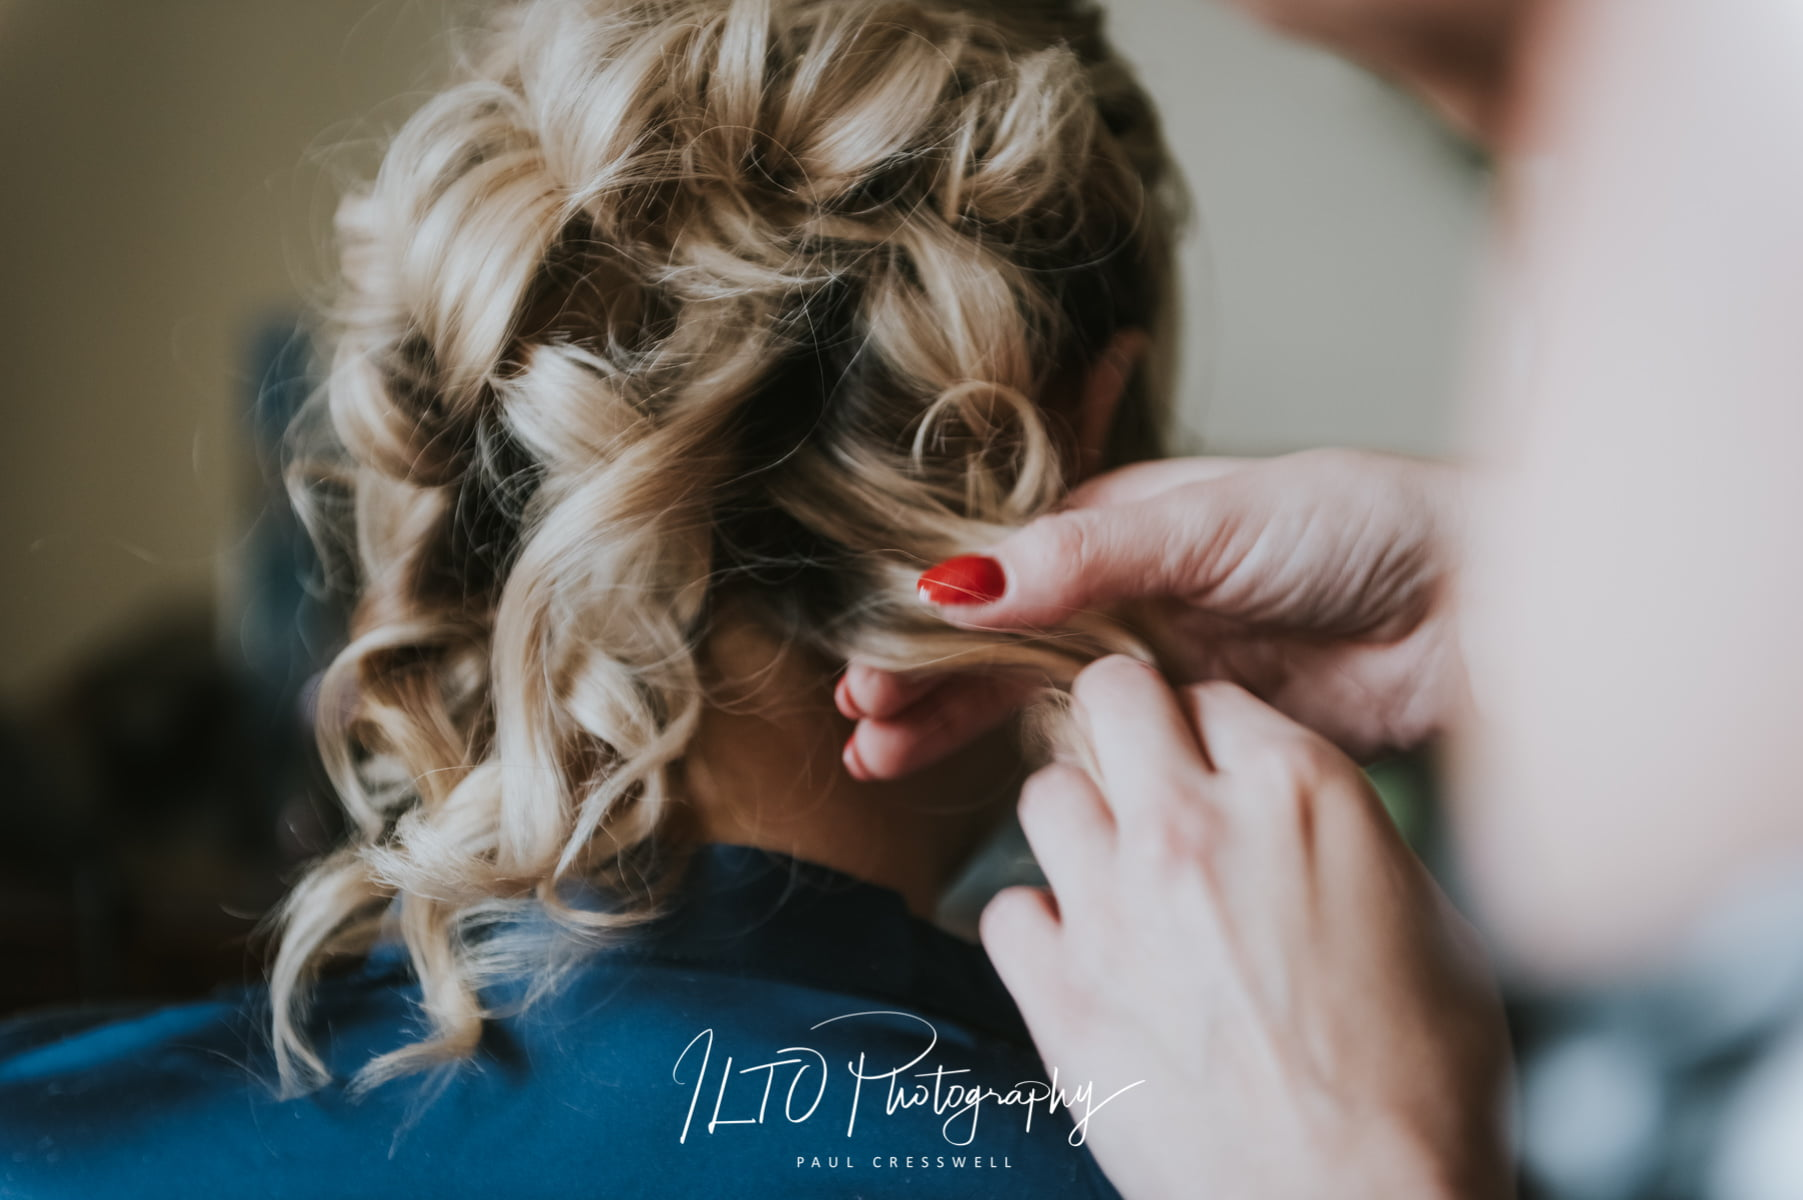 Bridal hair ideas Wedding Photographer West Yorkshire 2019 Portfolio